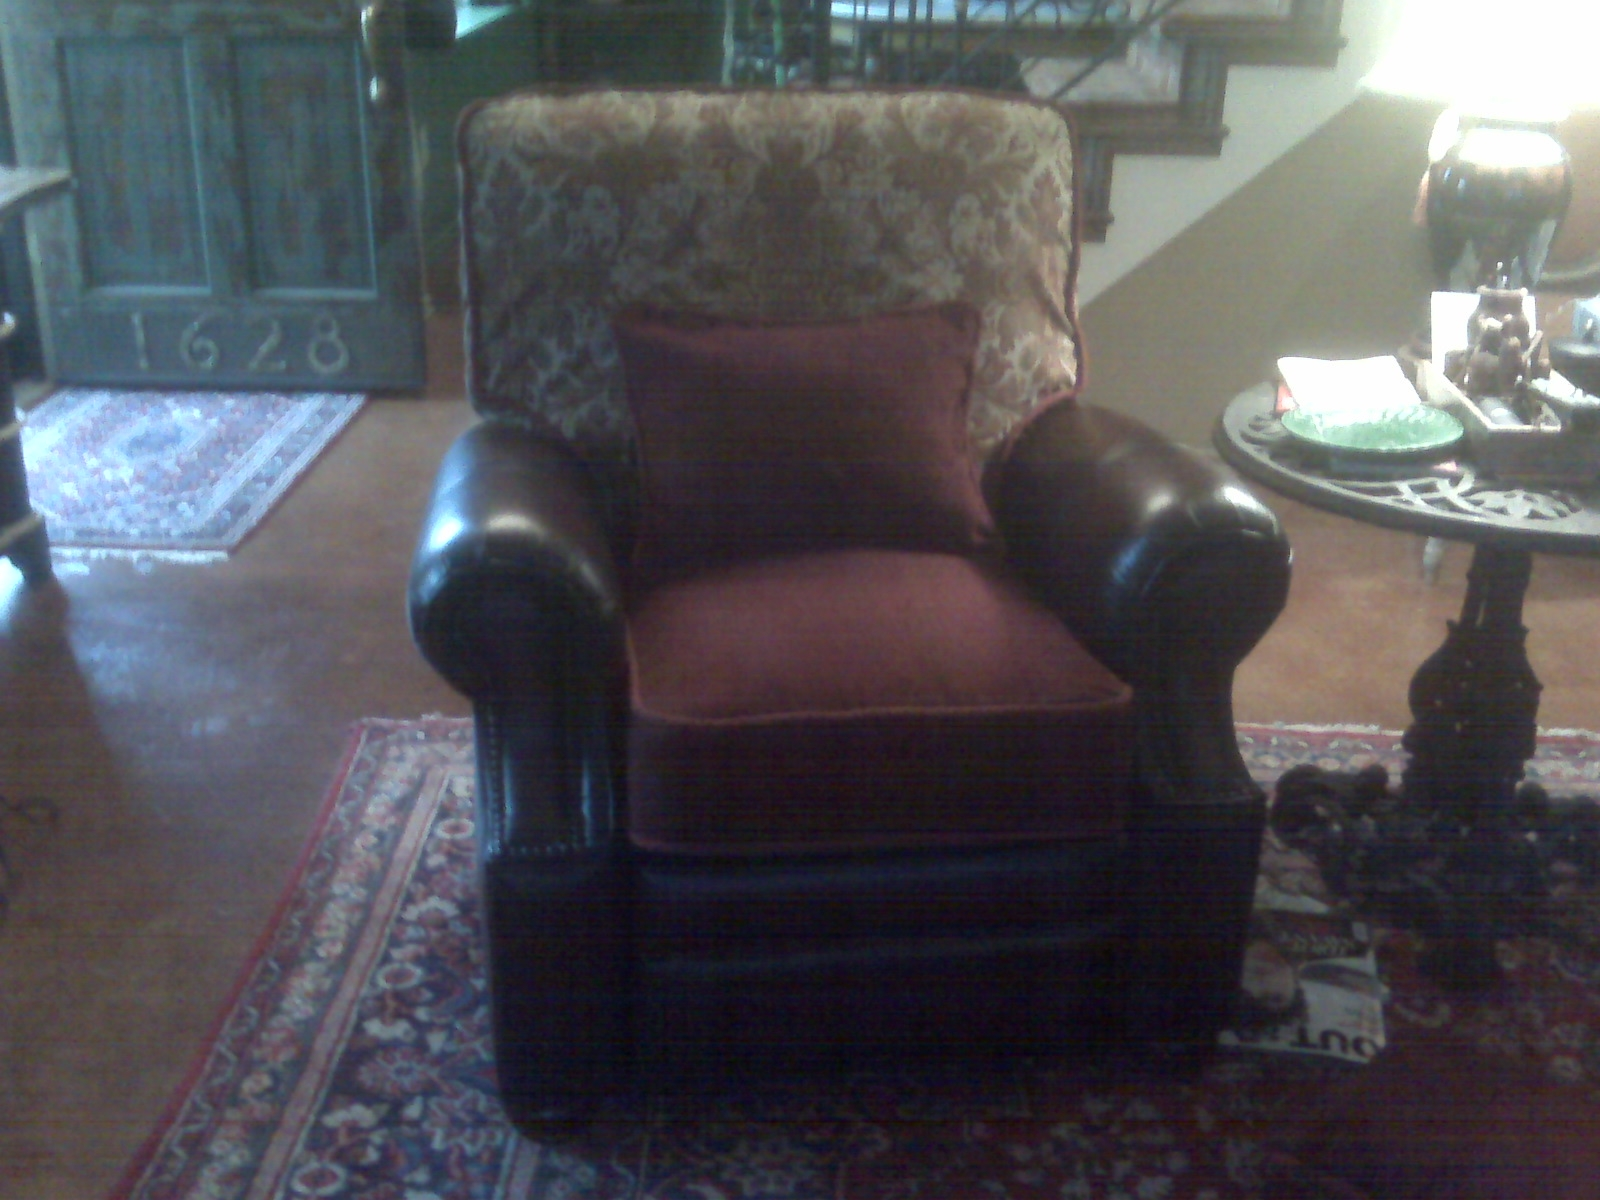 Slipcovered cushions on recliner chairs & Accent Pillow